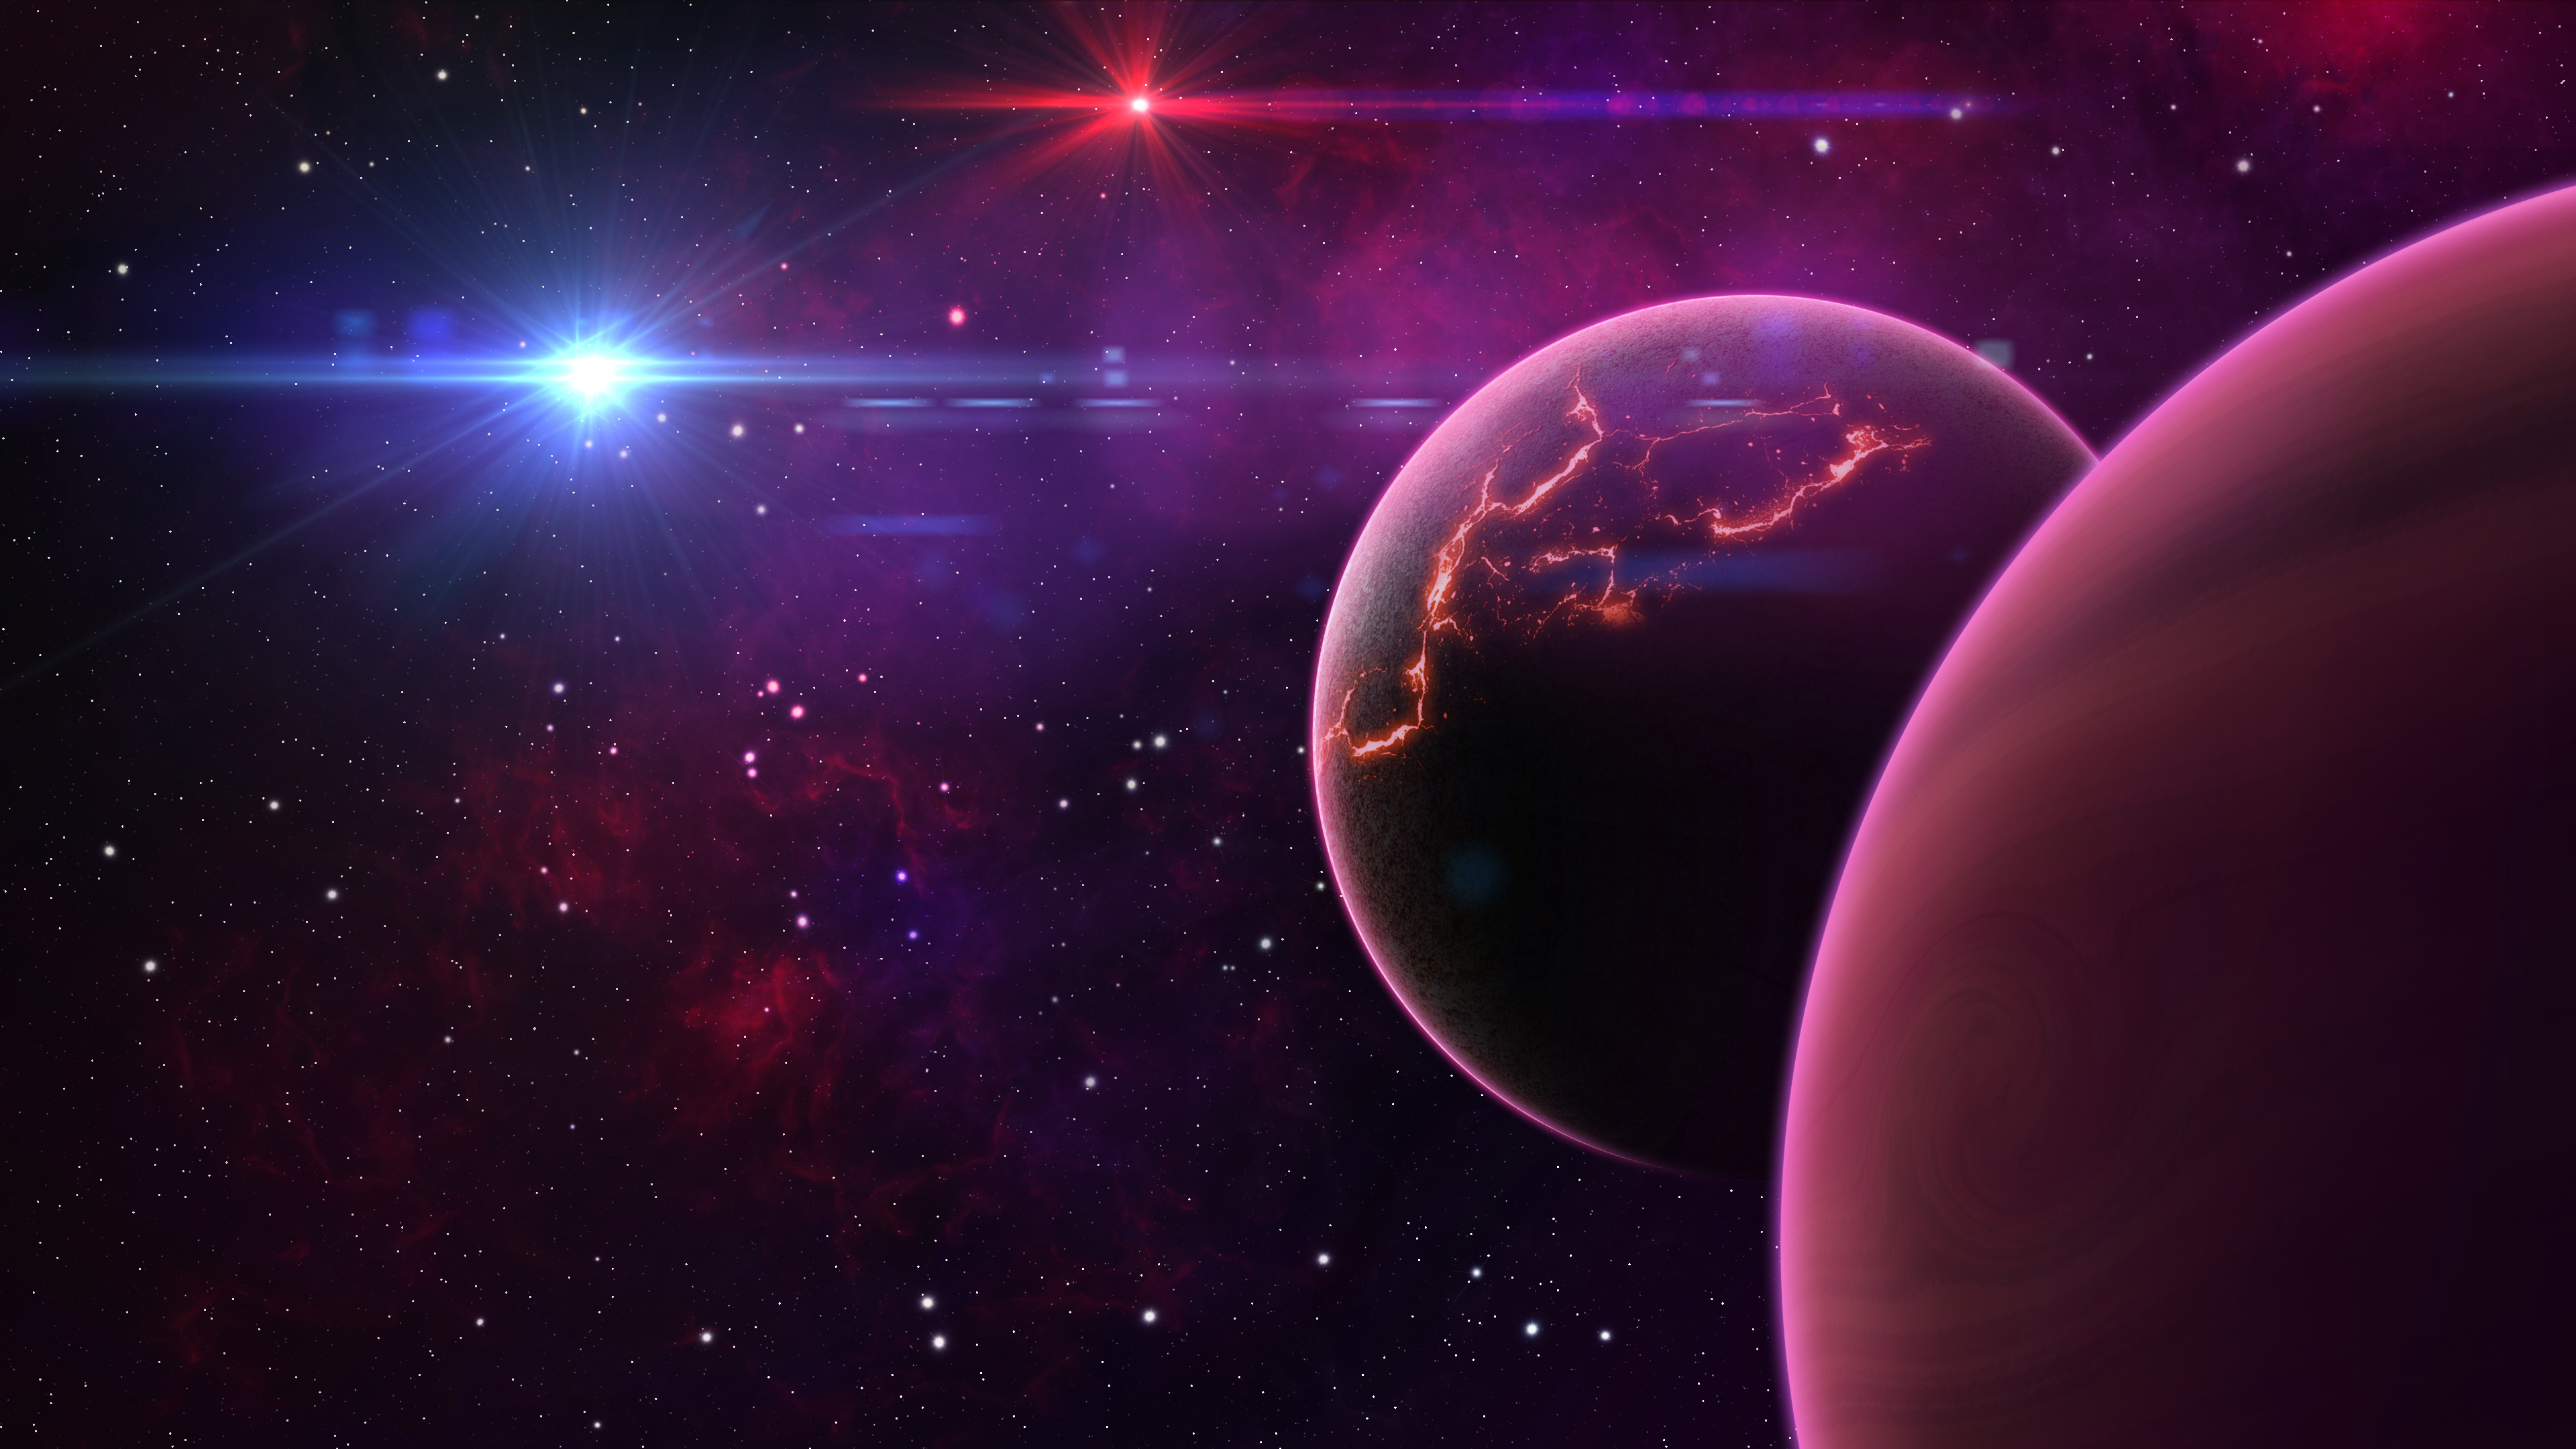 Wallpaper New planets in the universe